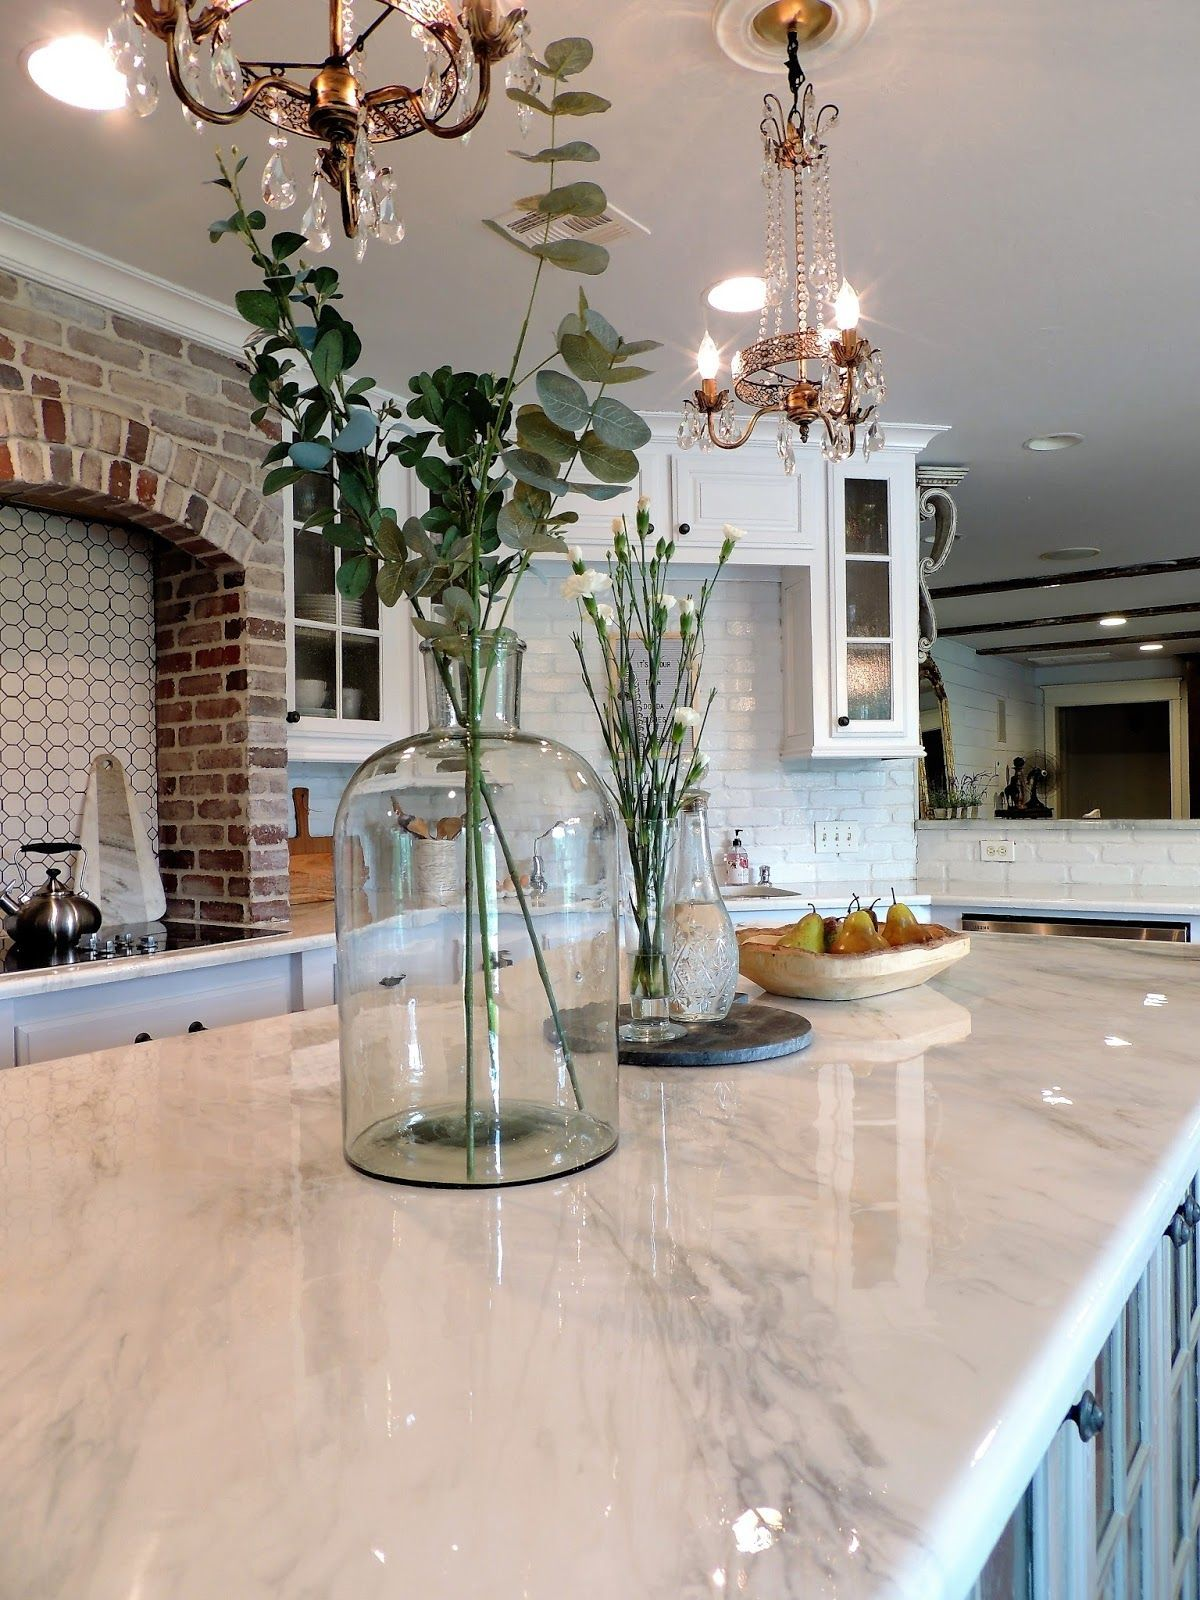 9 Secret Advice To Make An Outstanding Home Bathroom Remodel ... on